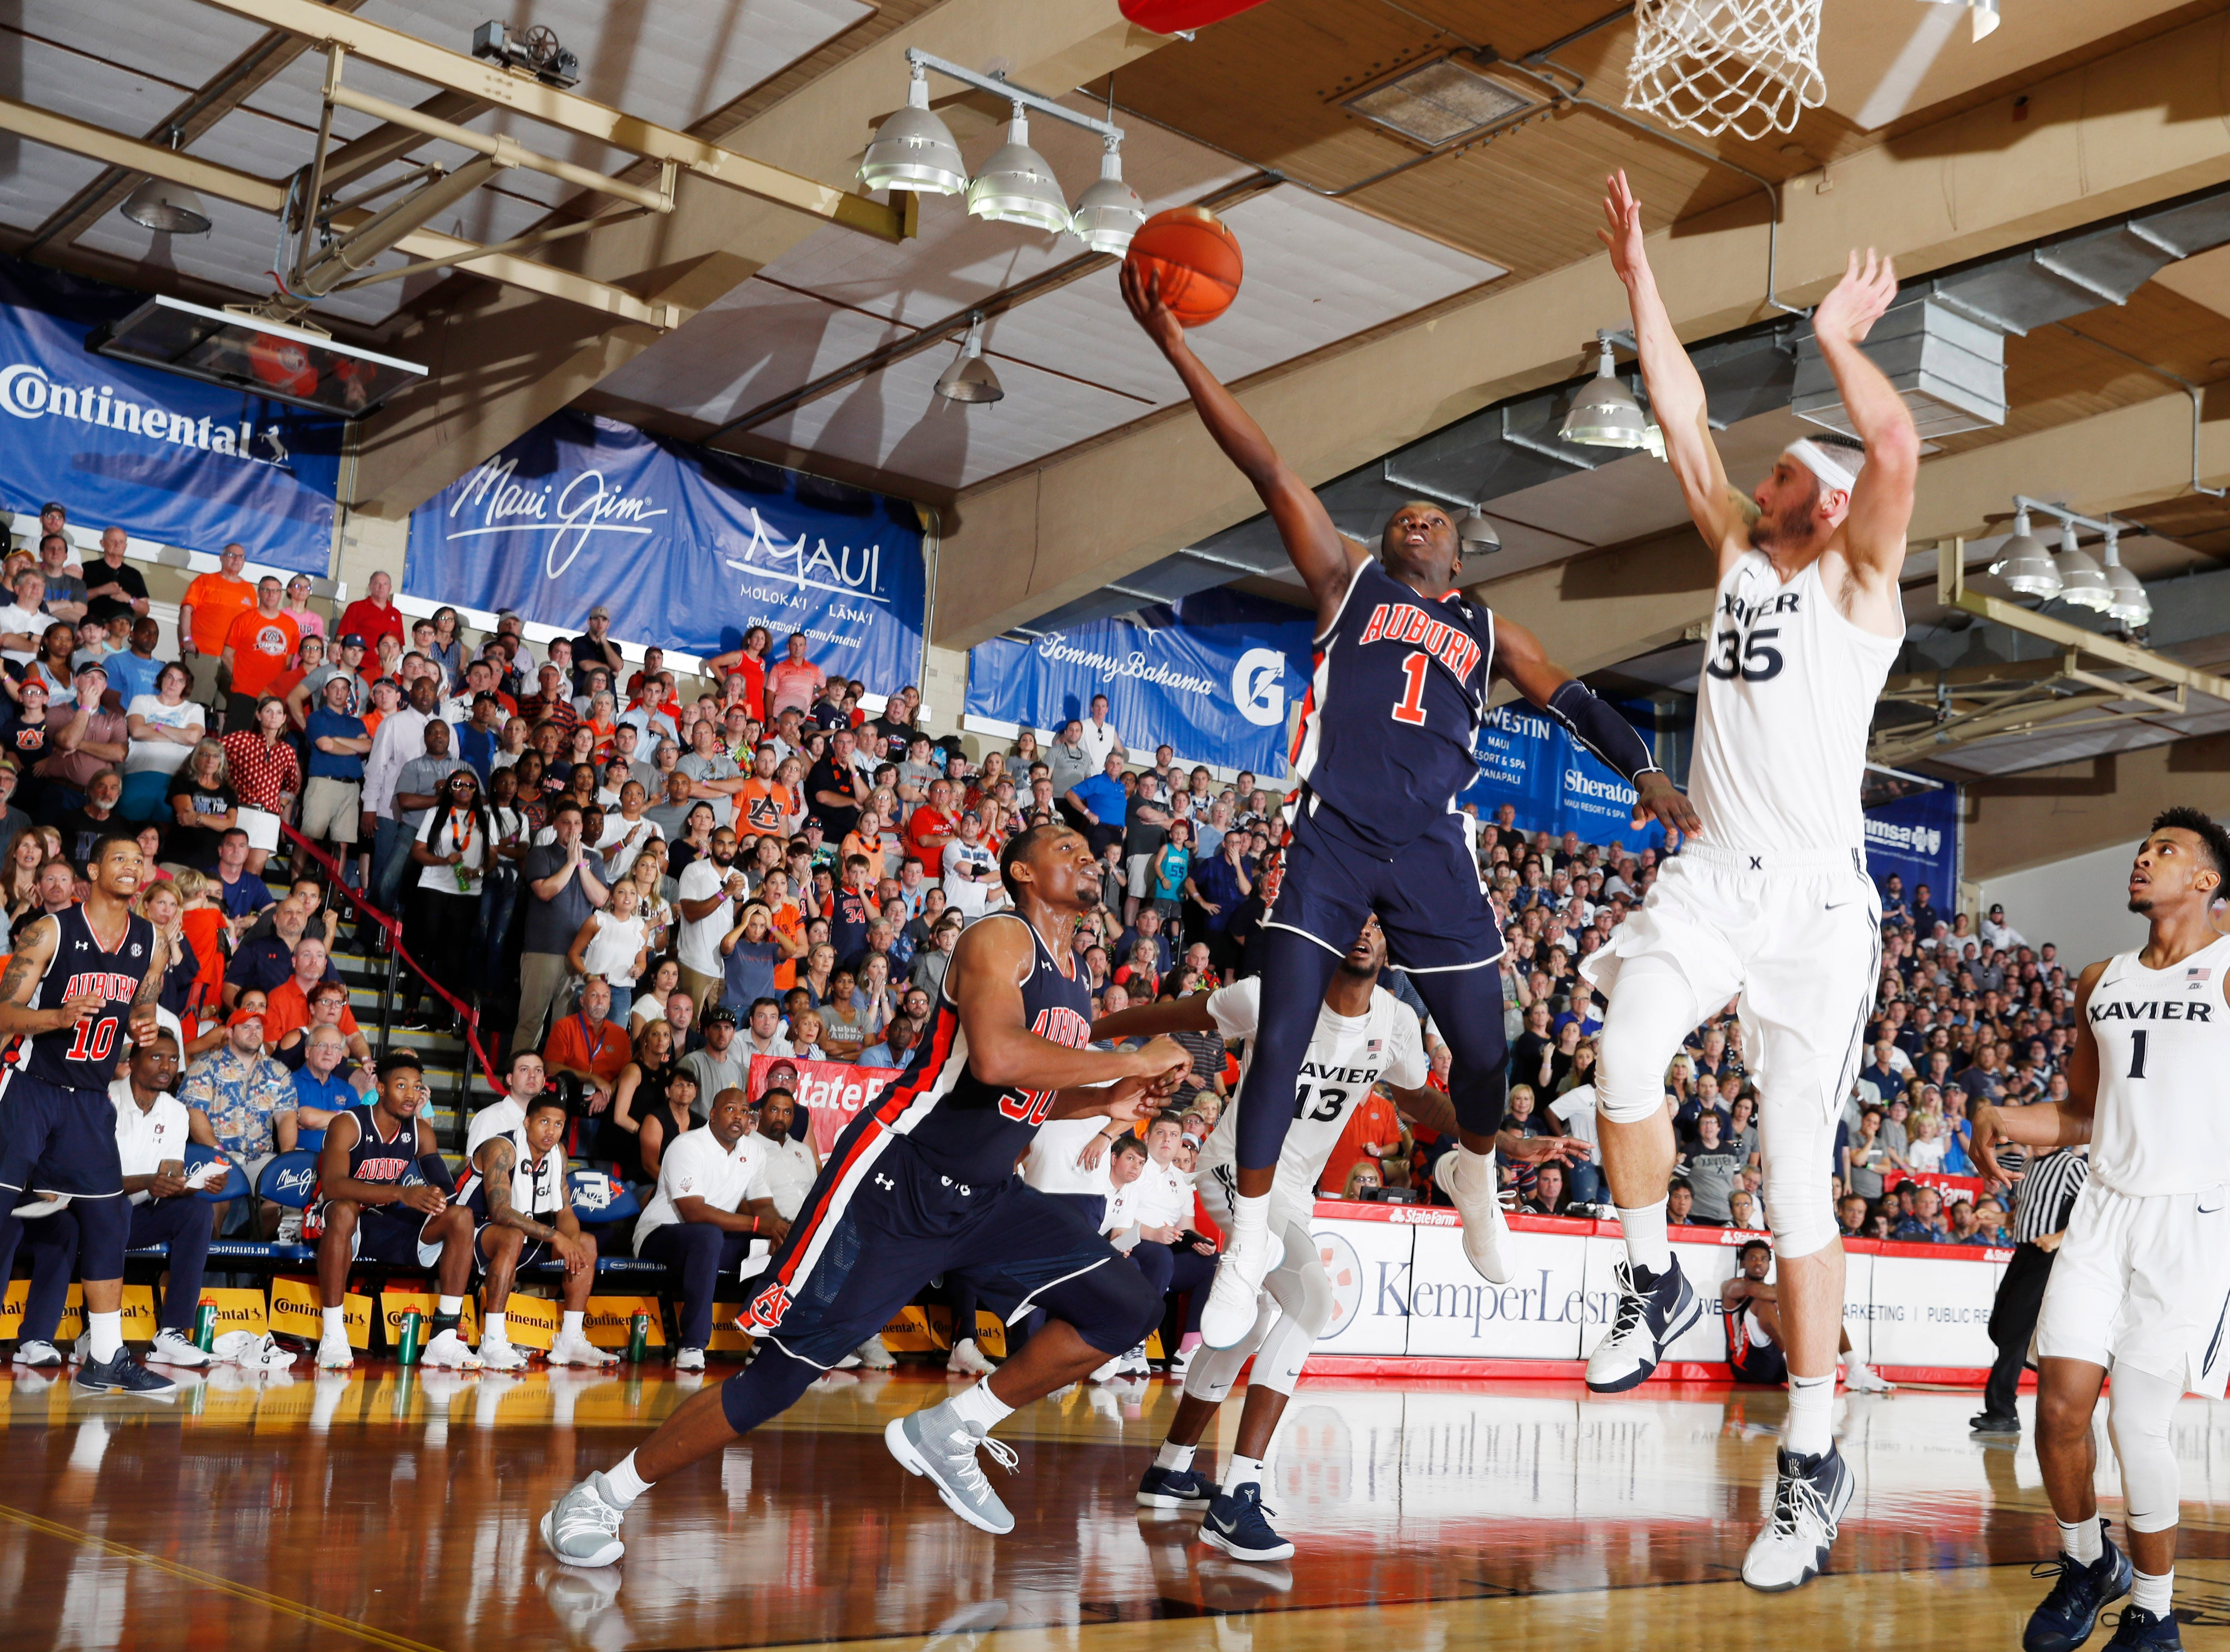 Nov 19, 2018; Lahaina, HI, USA; Auburn Tigers guard Jared Harper (1) takes a shot against Xavier Musketeers forward Zach Hankins (35) in the second half during the first round games of the Maui Jim Maui Invitational at Lahaina Civic Center. Mandatory Credit: Brian Spurlock-USA TODAY Sports